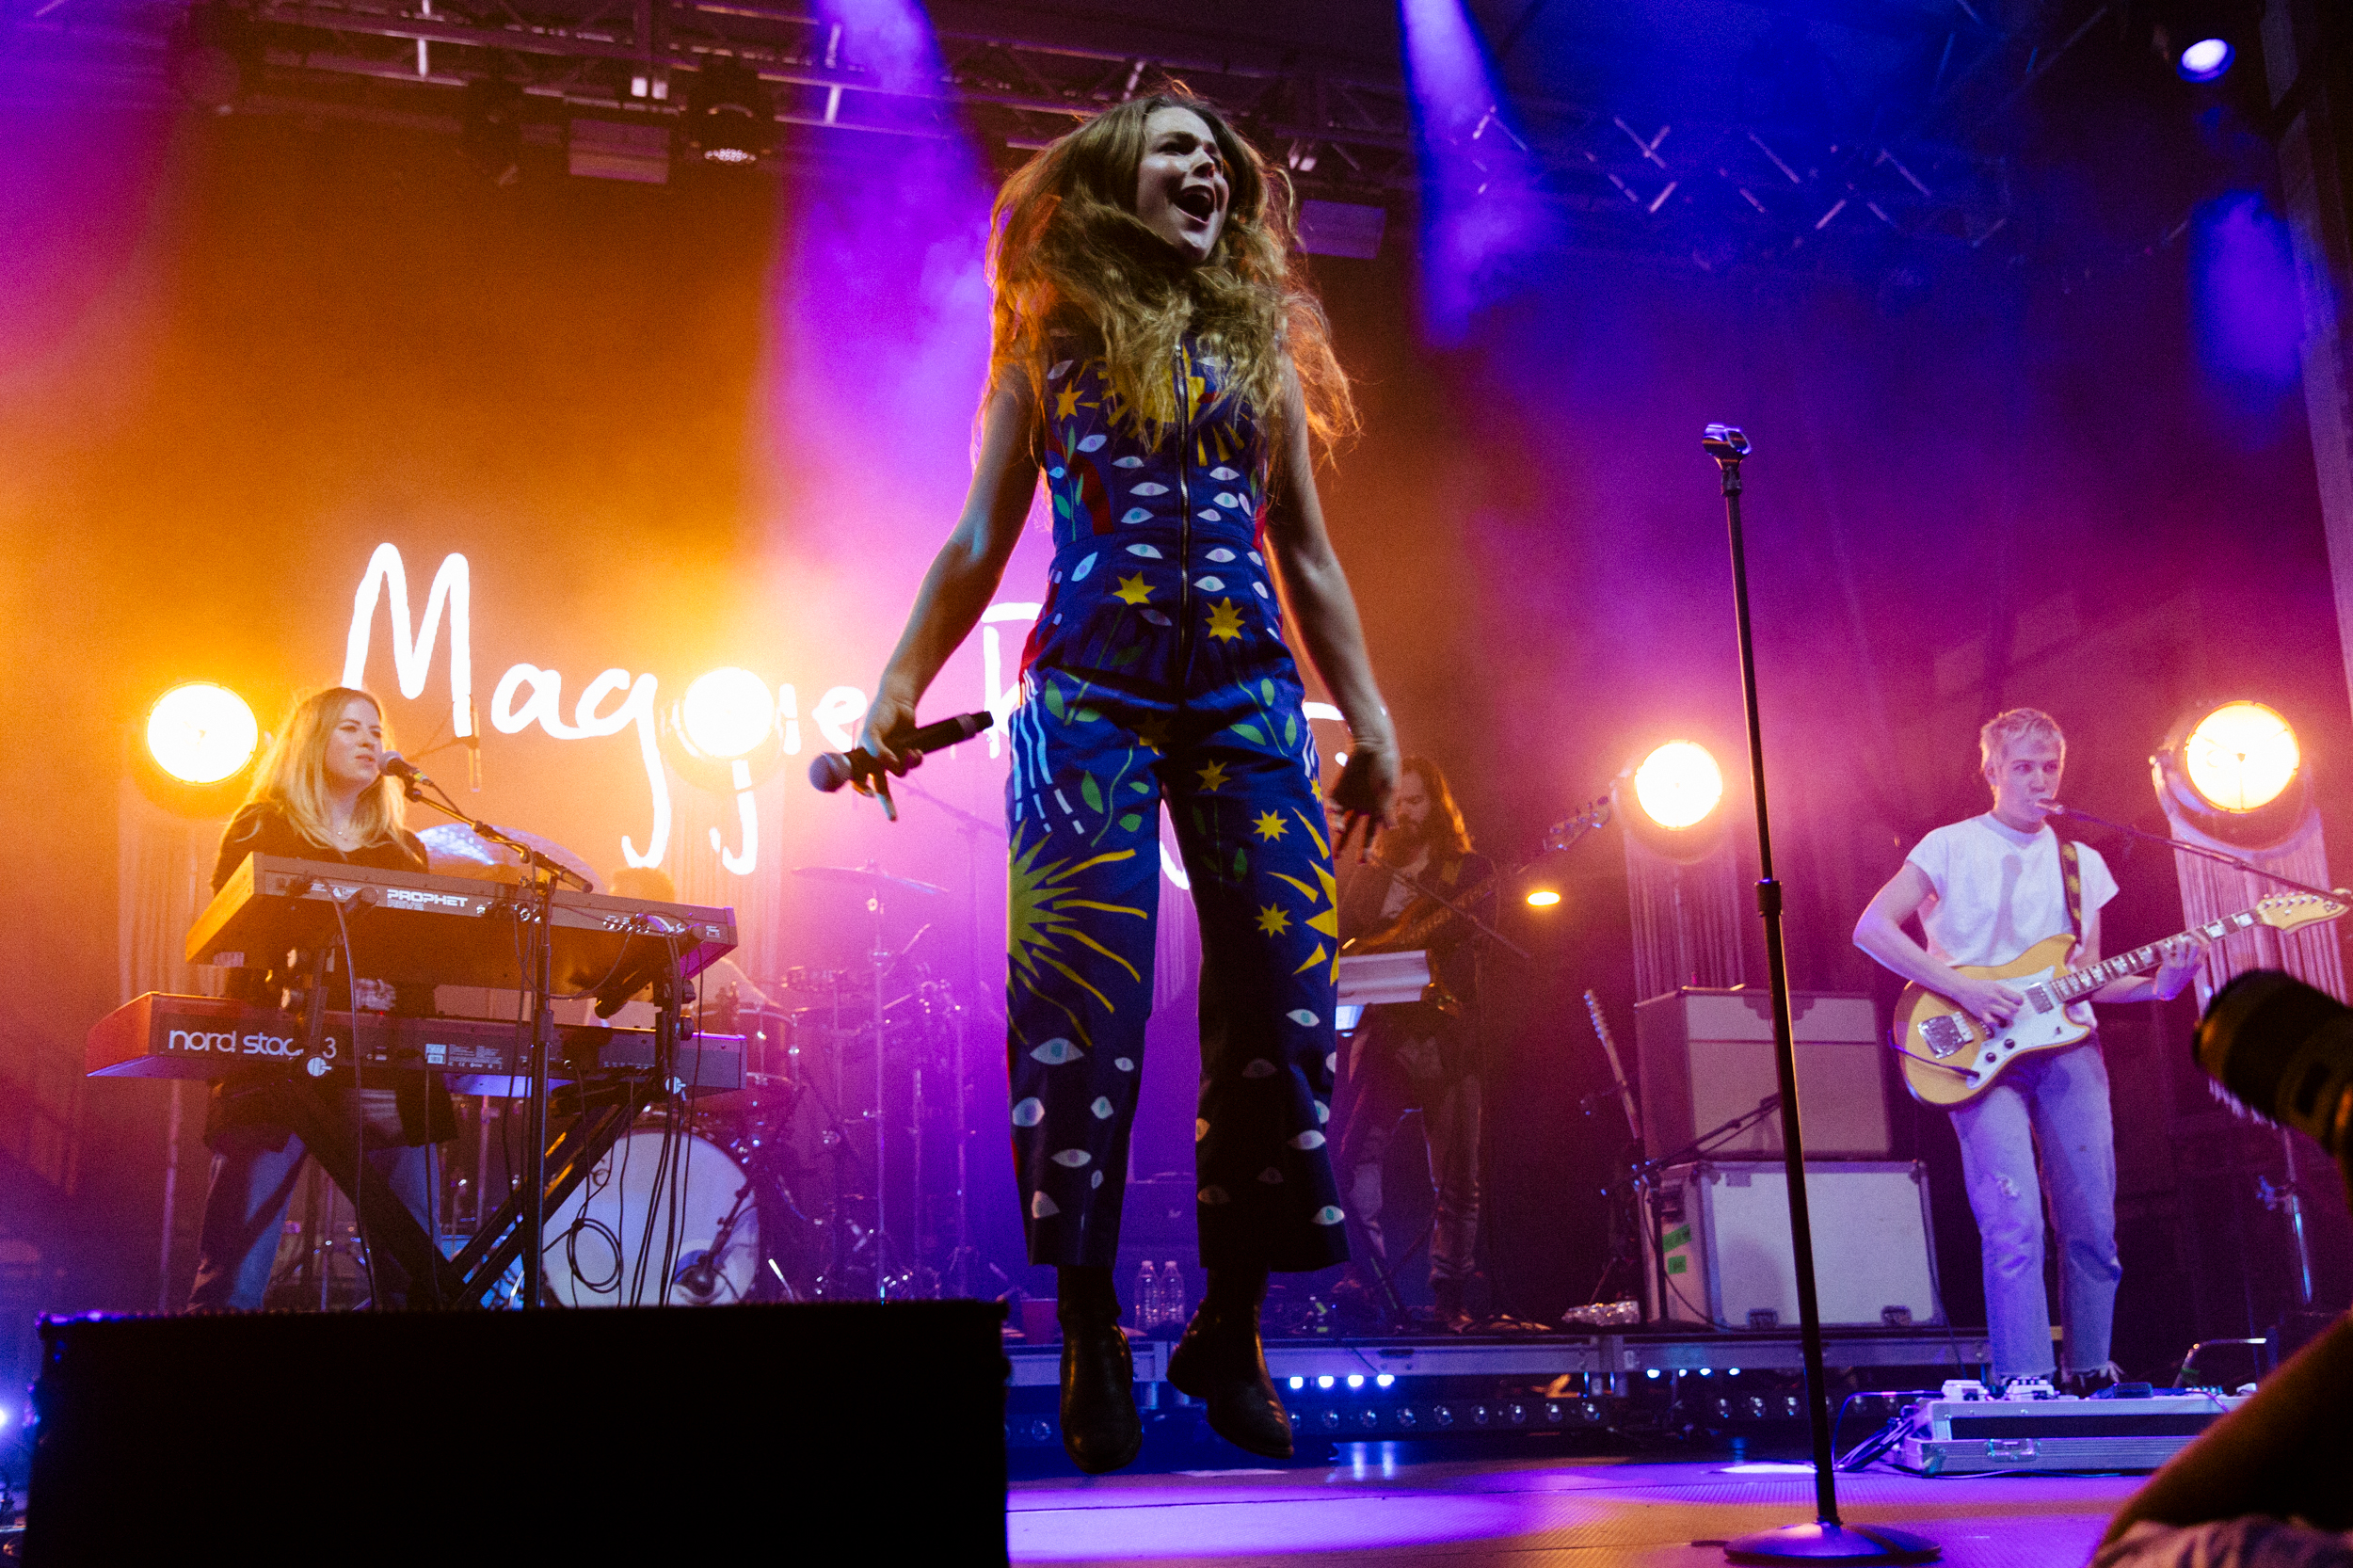 Maggie Rogers at the 2018 All Things Go Fall Classic (Photo by Mauricio Castro)